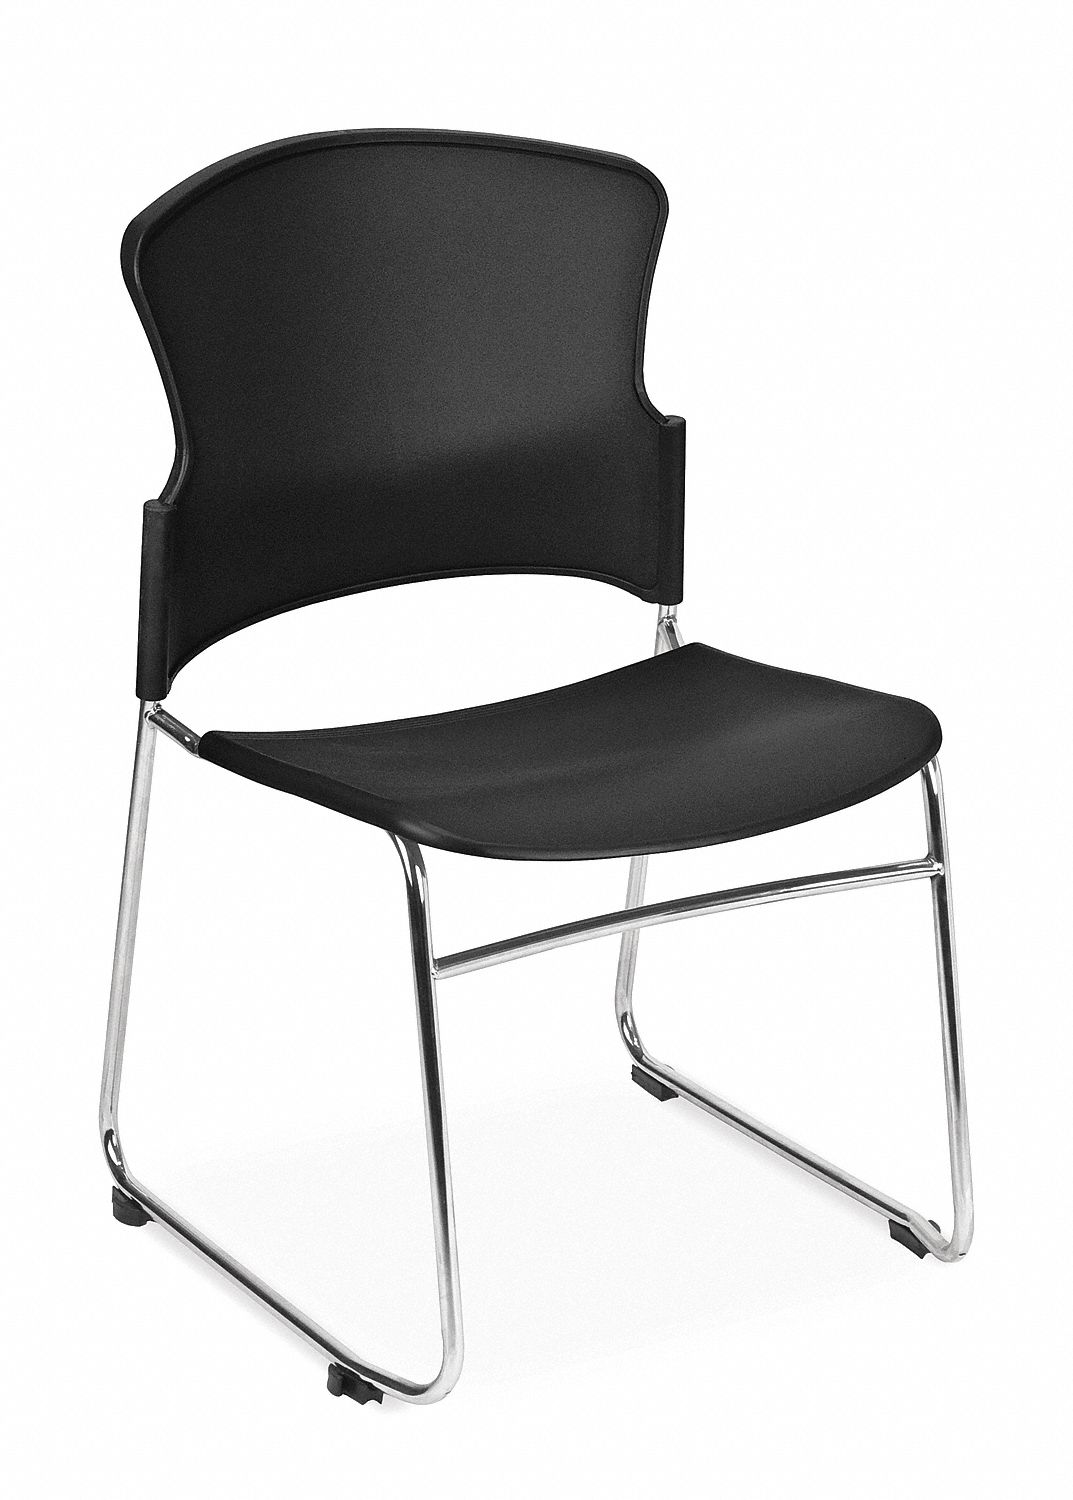 ergonomic chair grainger cover rentals pensacola fl ofm inc chrome steel stacking with black seat color